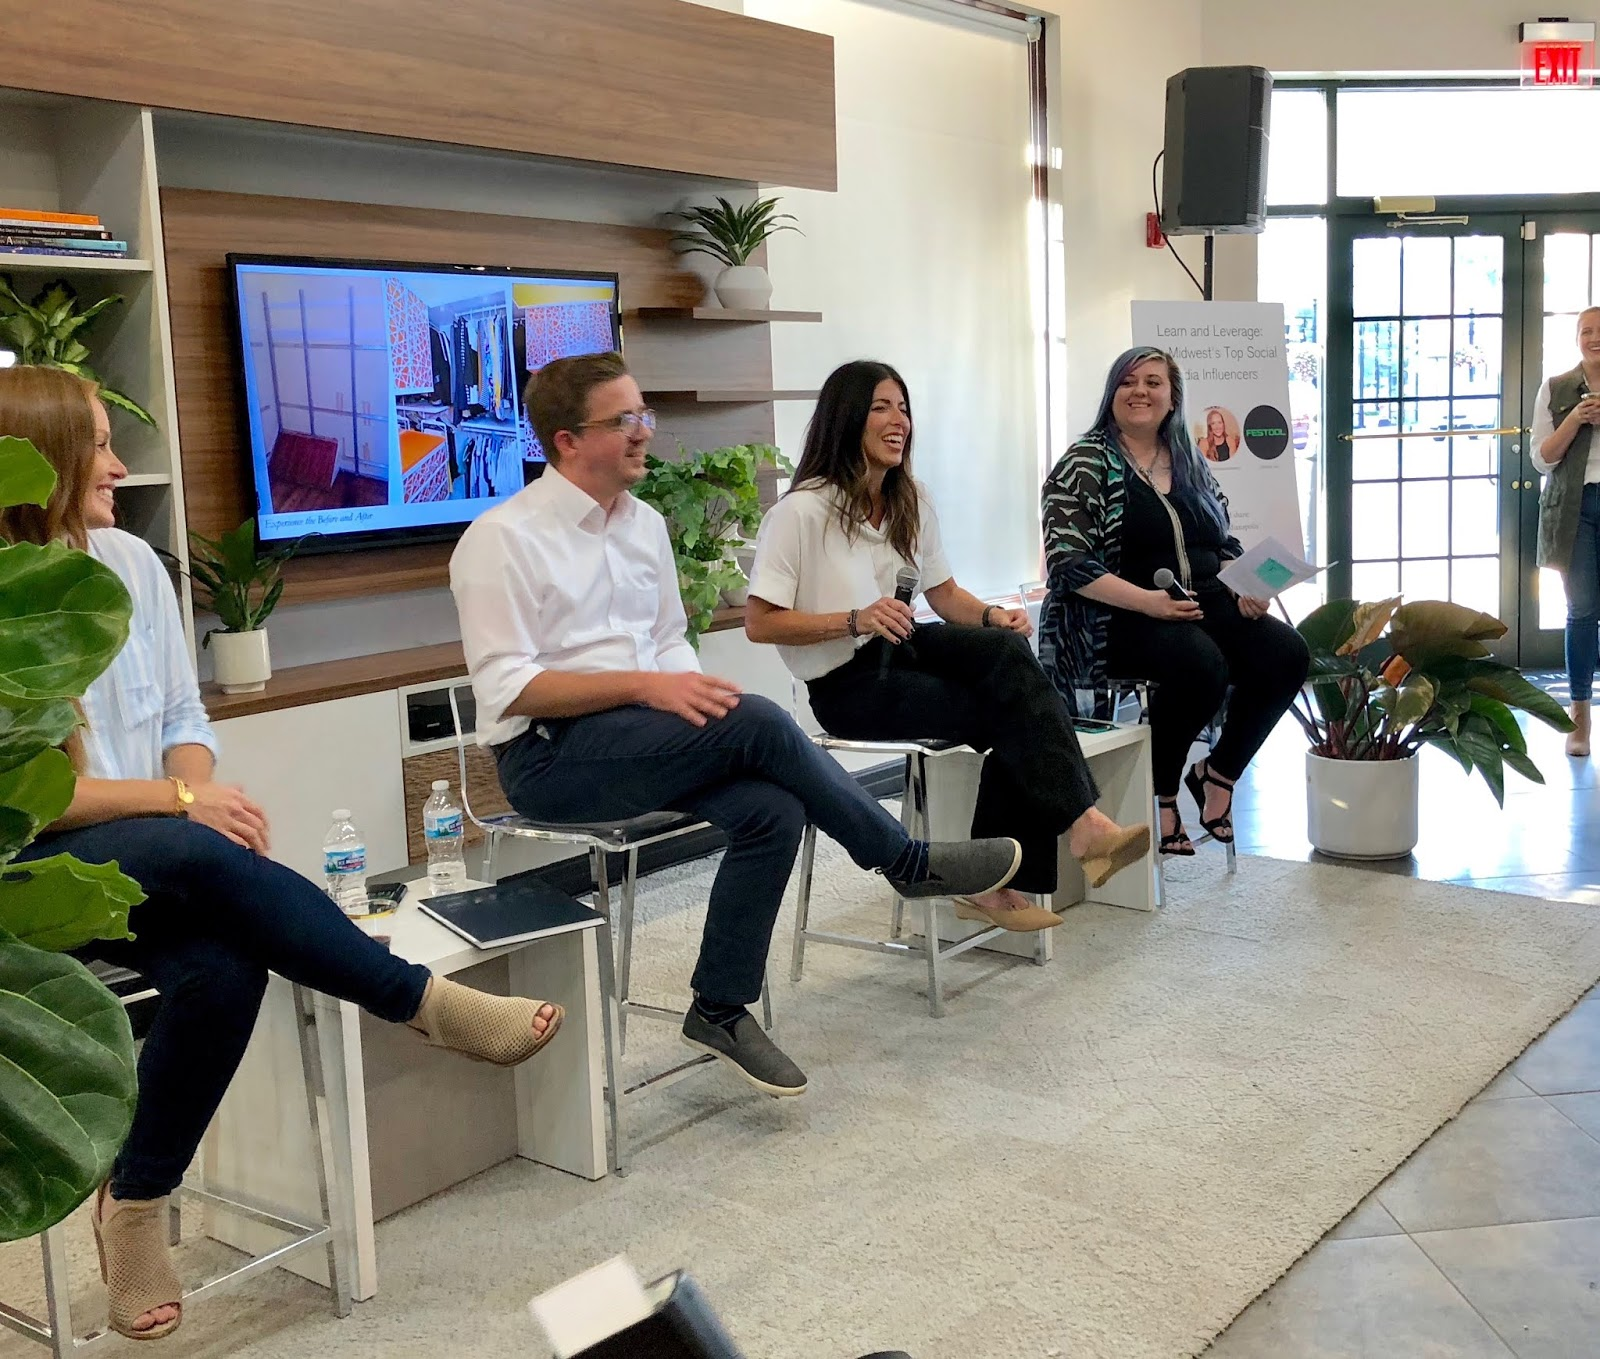 A Few Weeks Ago I Had The Pleasure Of Participating In An Influencer Panel  Hosted By California Closets. The Other Panelists And I Answered Questions  About ...